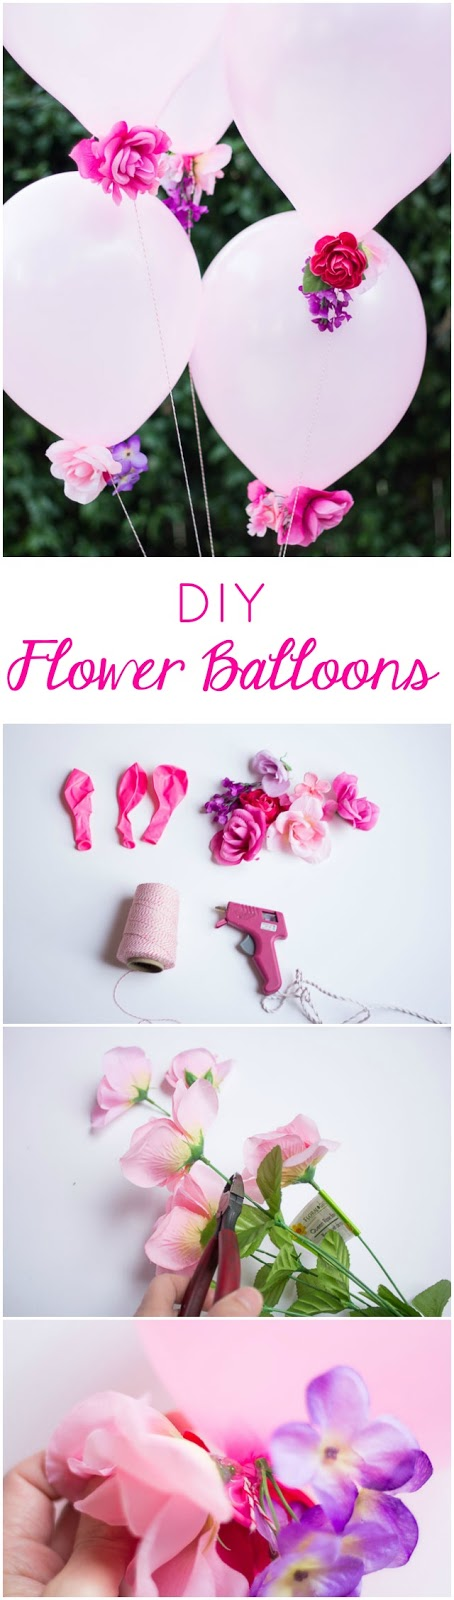 DIY Flower Balloons | Design Improvised